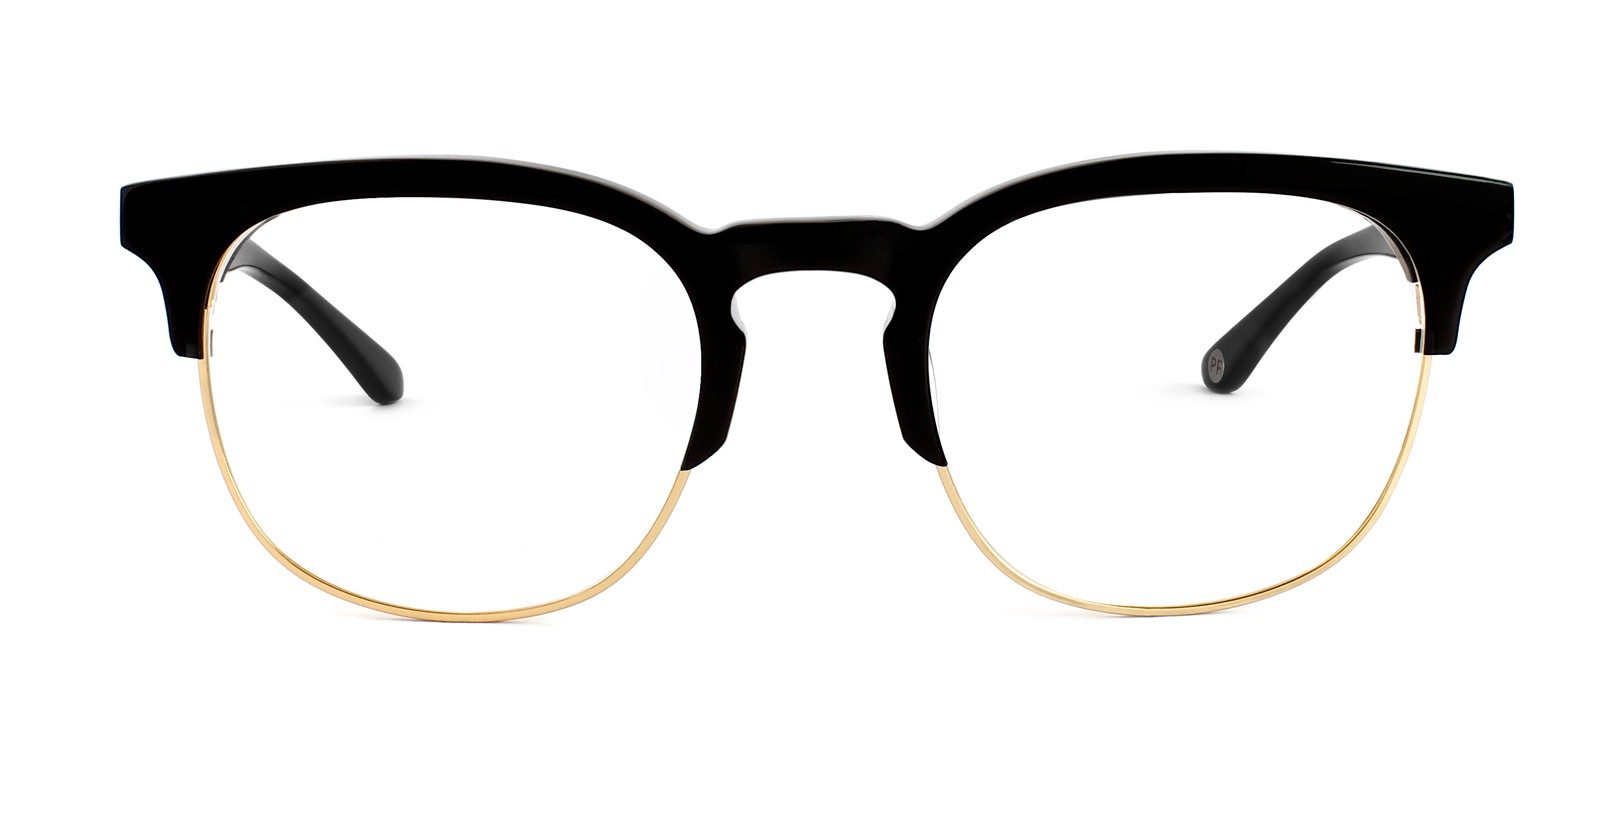 427ce895459 Atticus Prescription Eyeglasses in Glossy Black and Gold - Park and ...